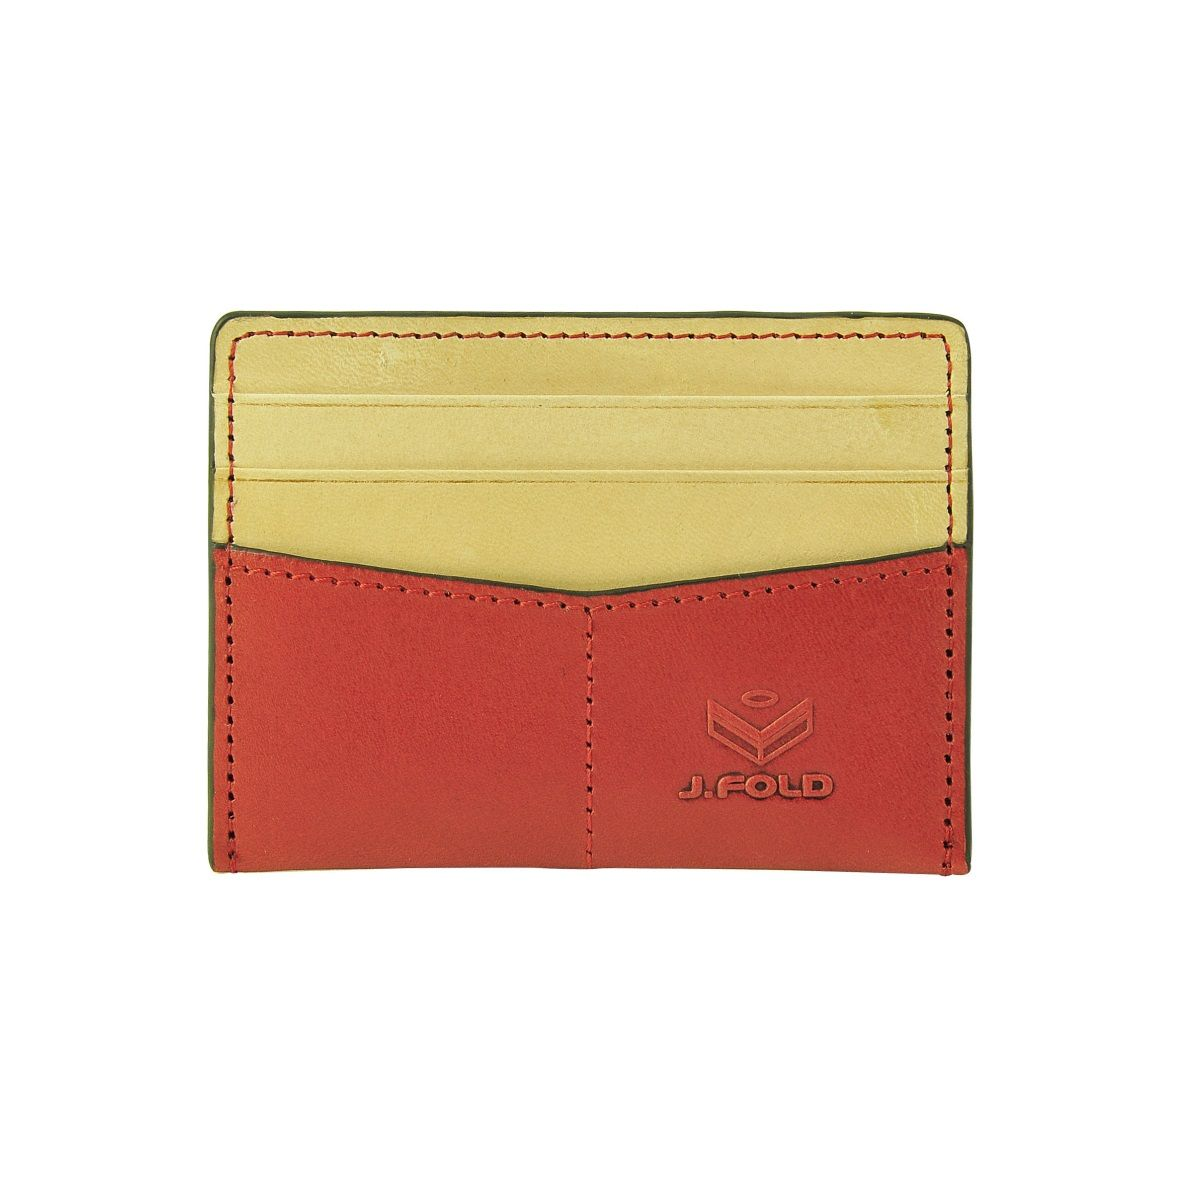 J.FOLD Flat Carrier Leather Wallet - Red